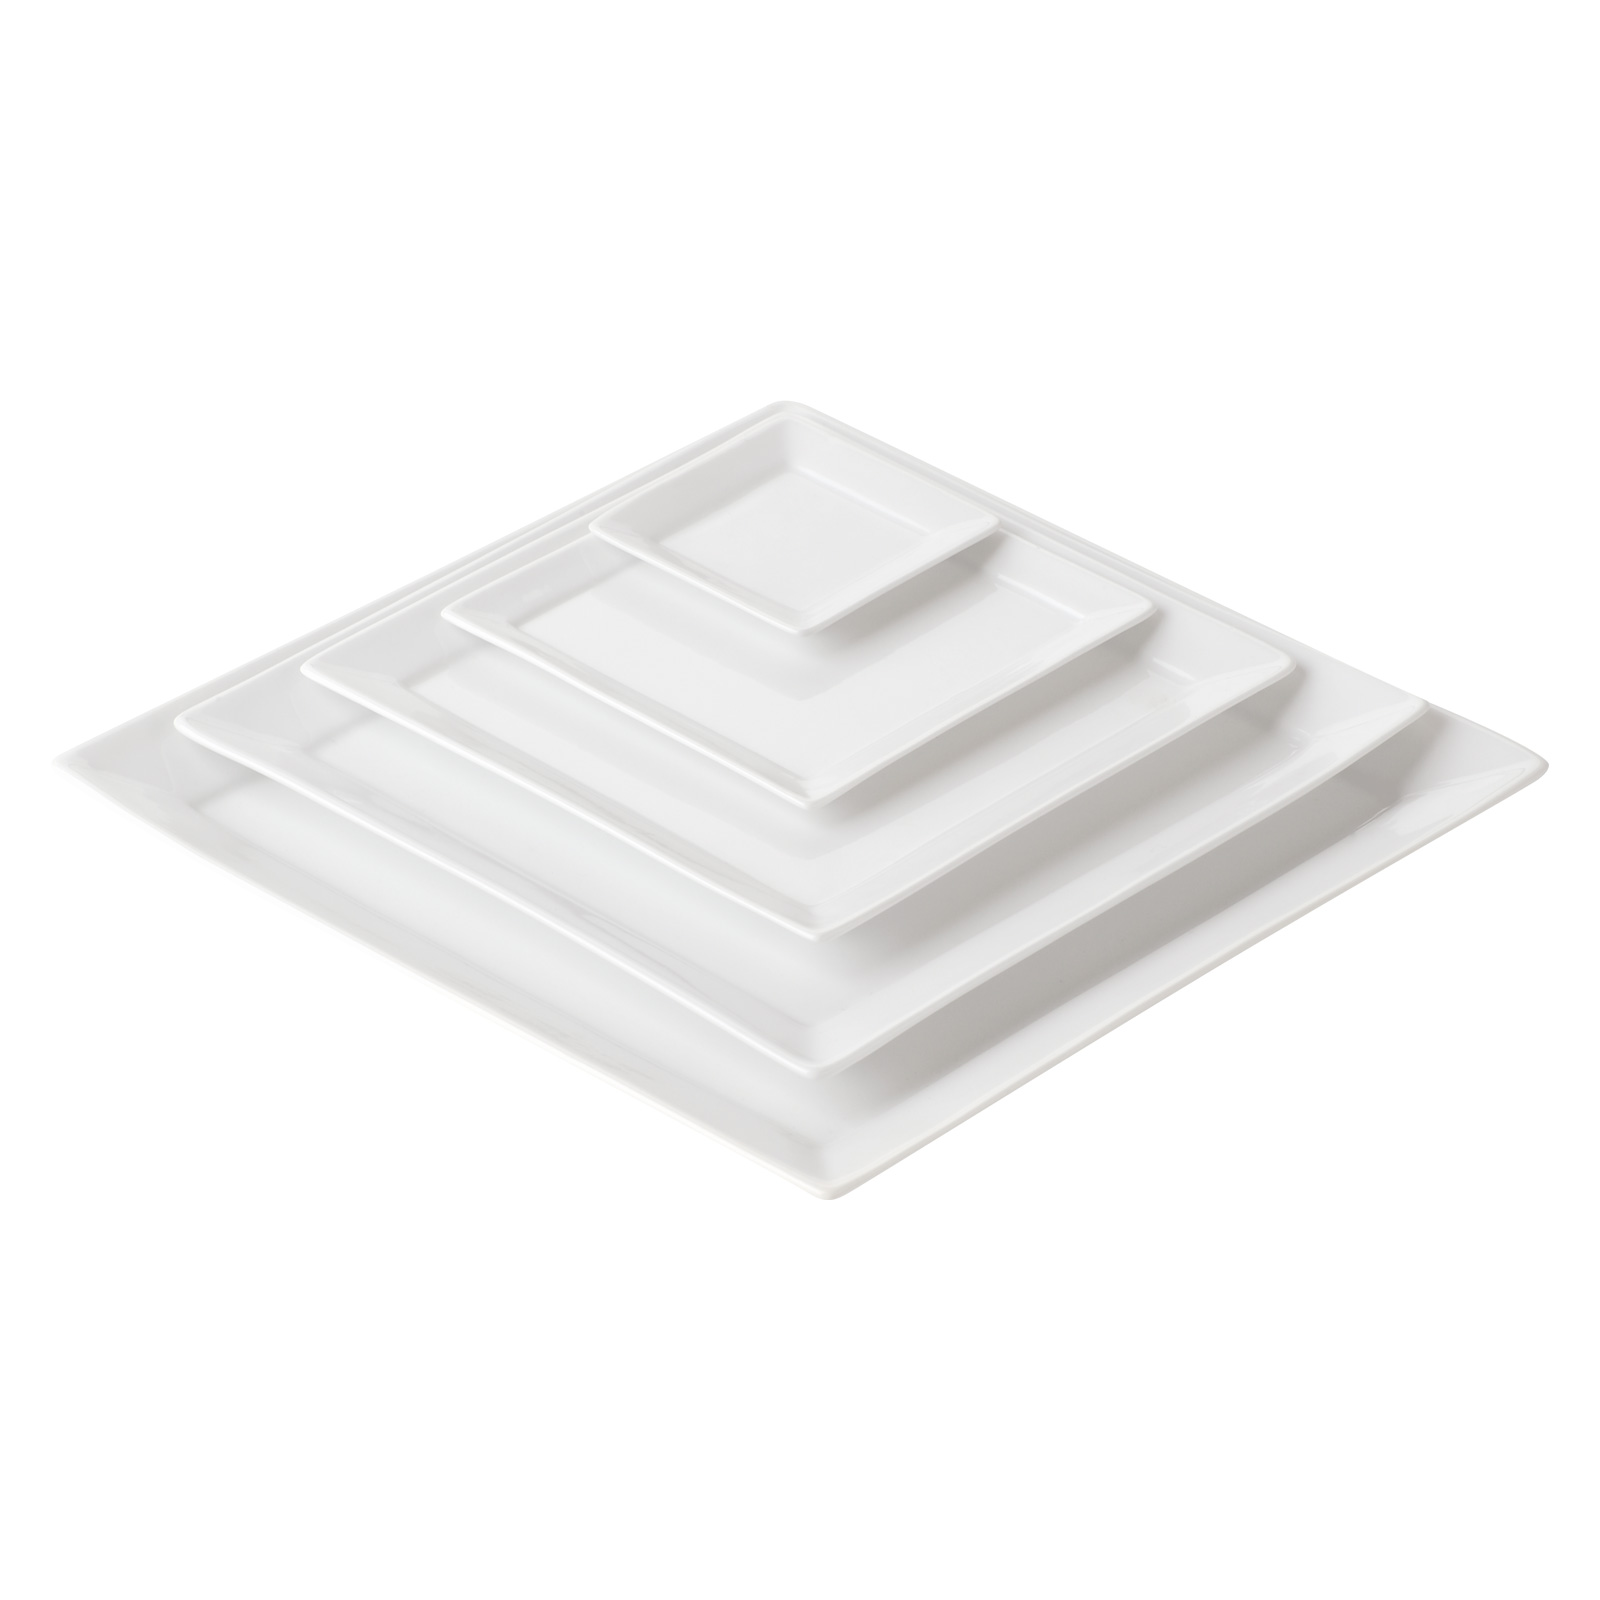 Set of 4 Zensation Square Trays Extra Large by BIA